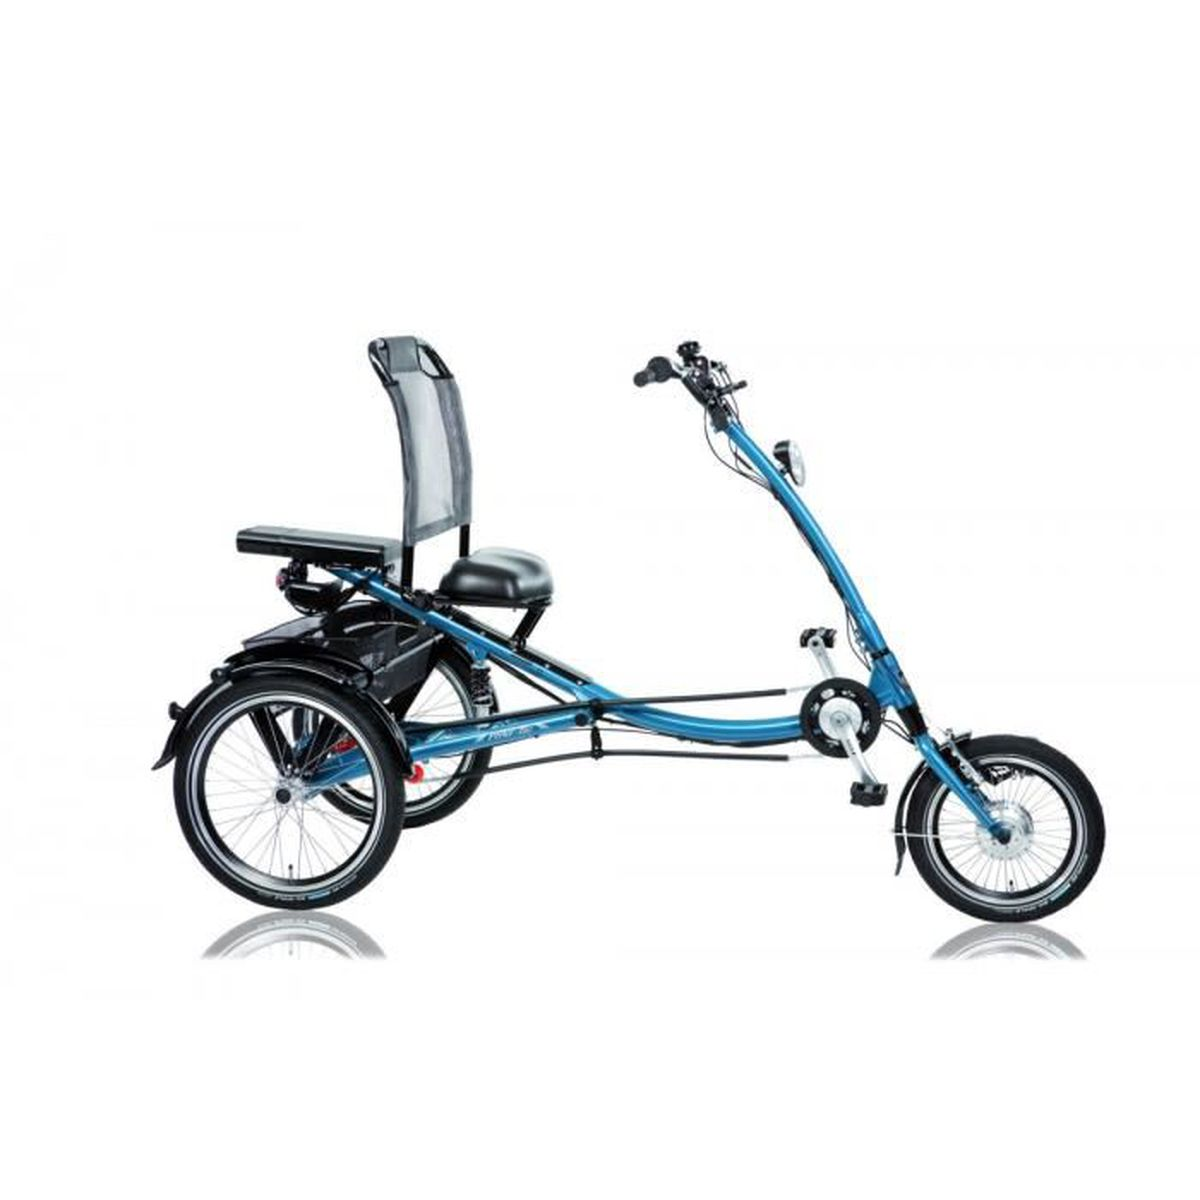 velo electrique tricycle scooter adulte trike 16 20 prix. Black Bedroom Furniture Sets. Home Design Ideas